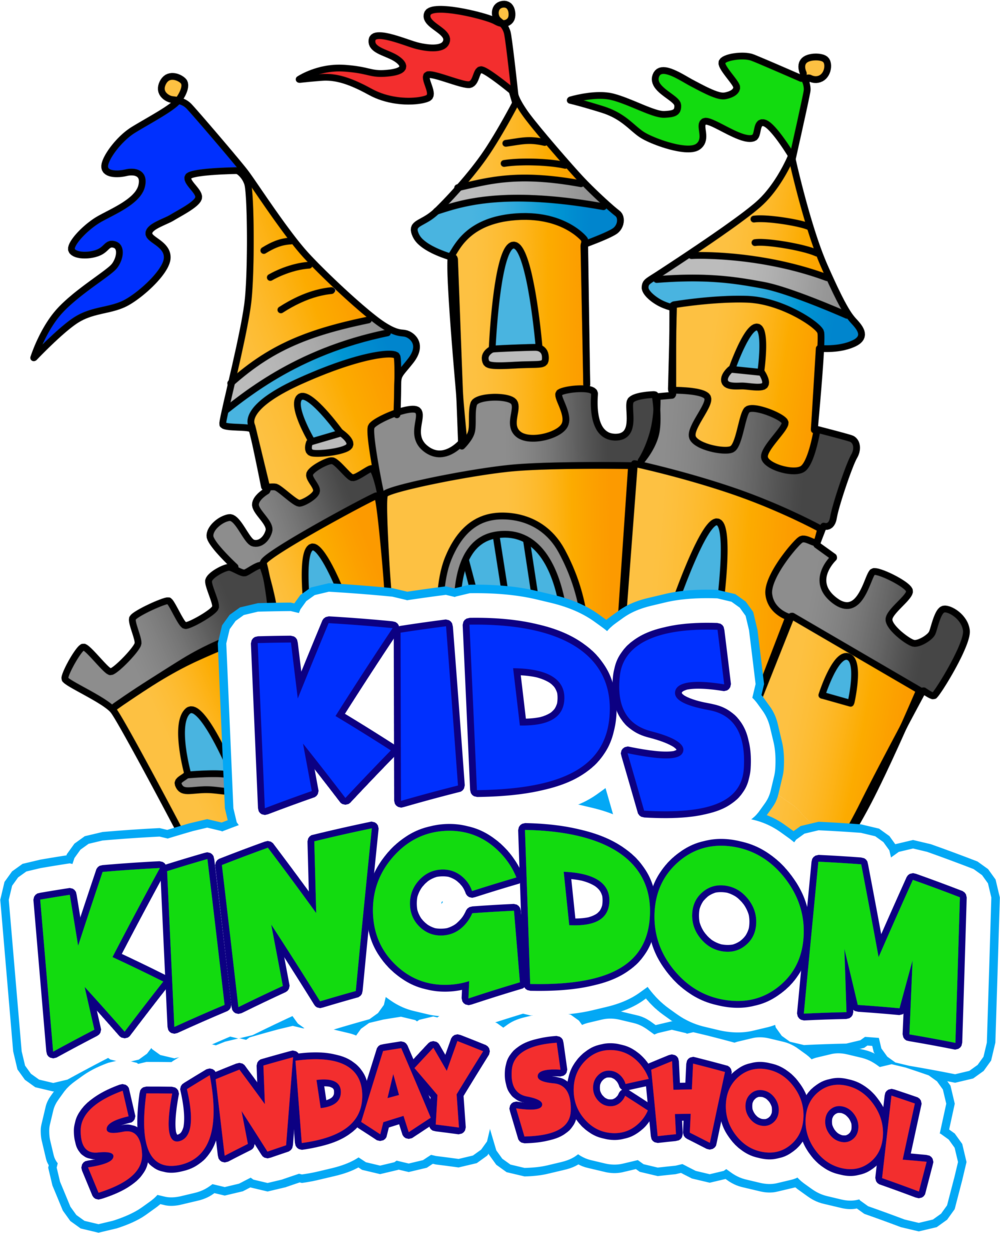 Sunday School Kids Kingdom Logo.png